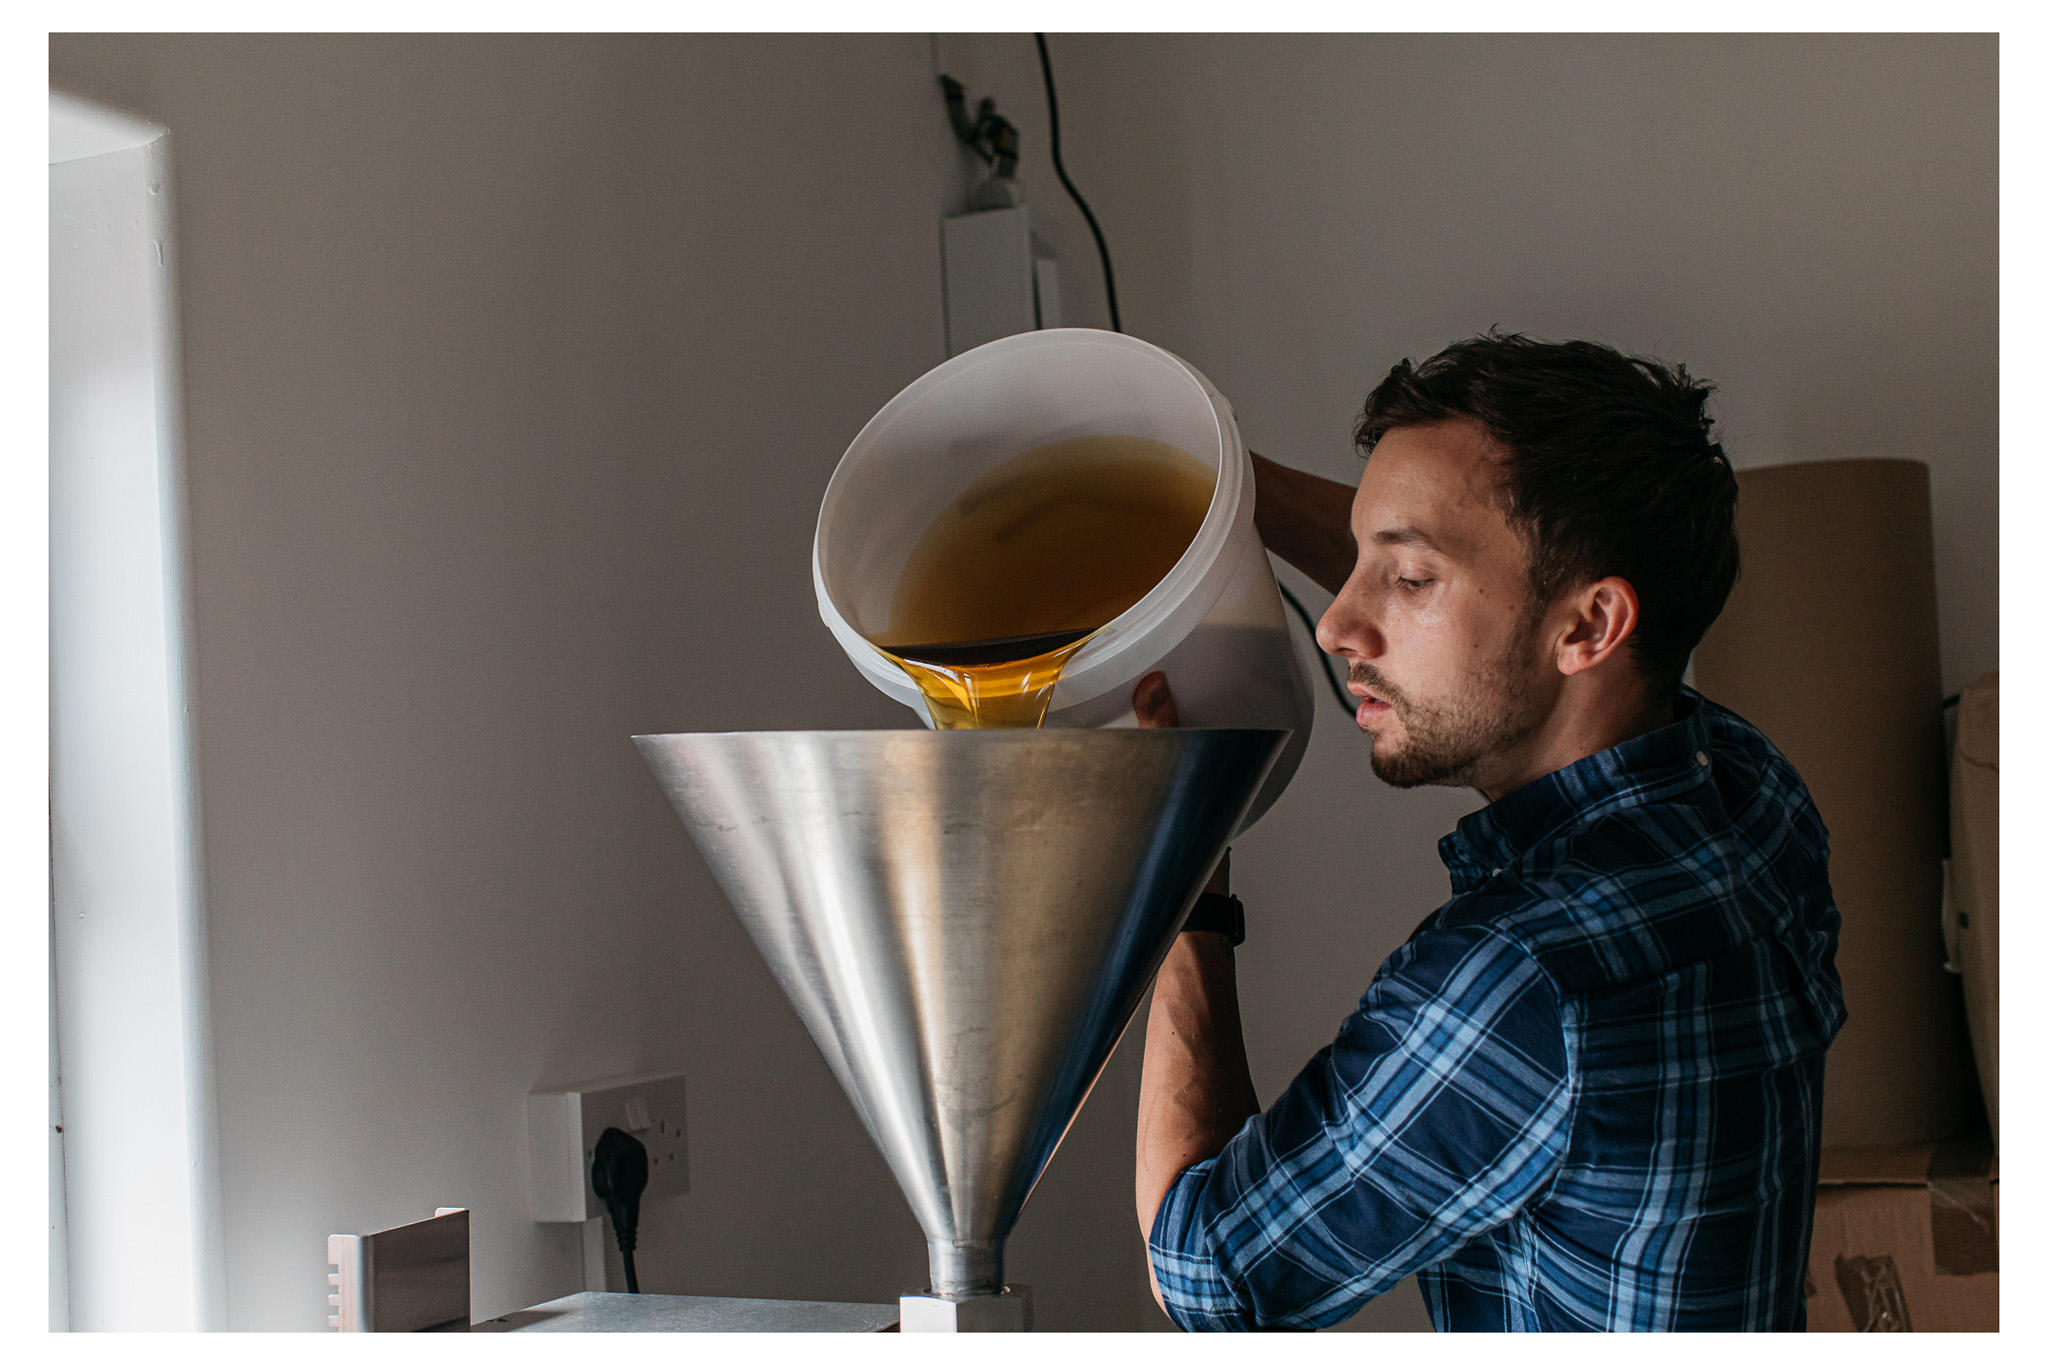 Natural honey extraction method photographed for Aecre honey by Emma Croman